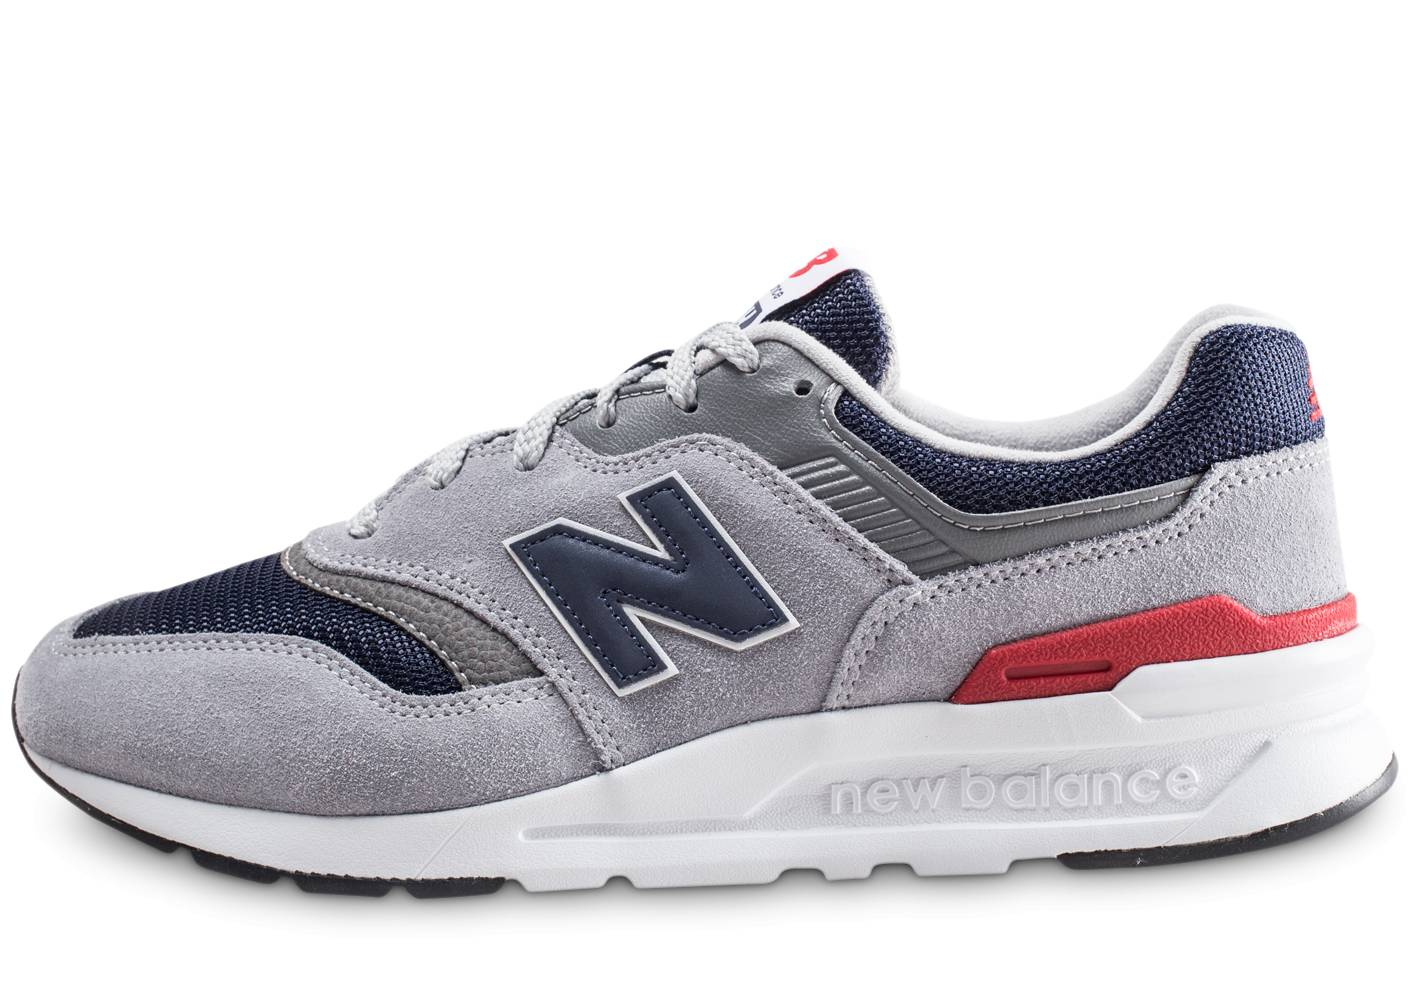 New Balance Homme 997 Grise Baskets 44